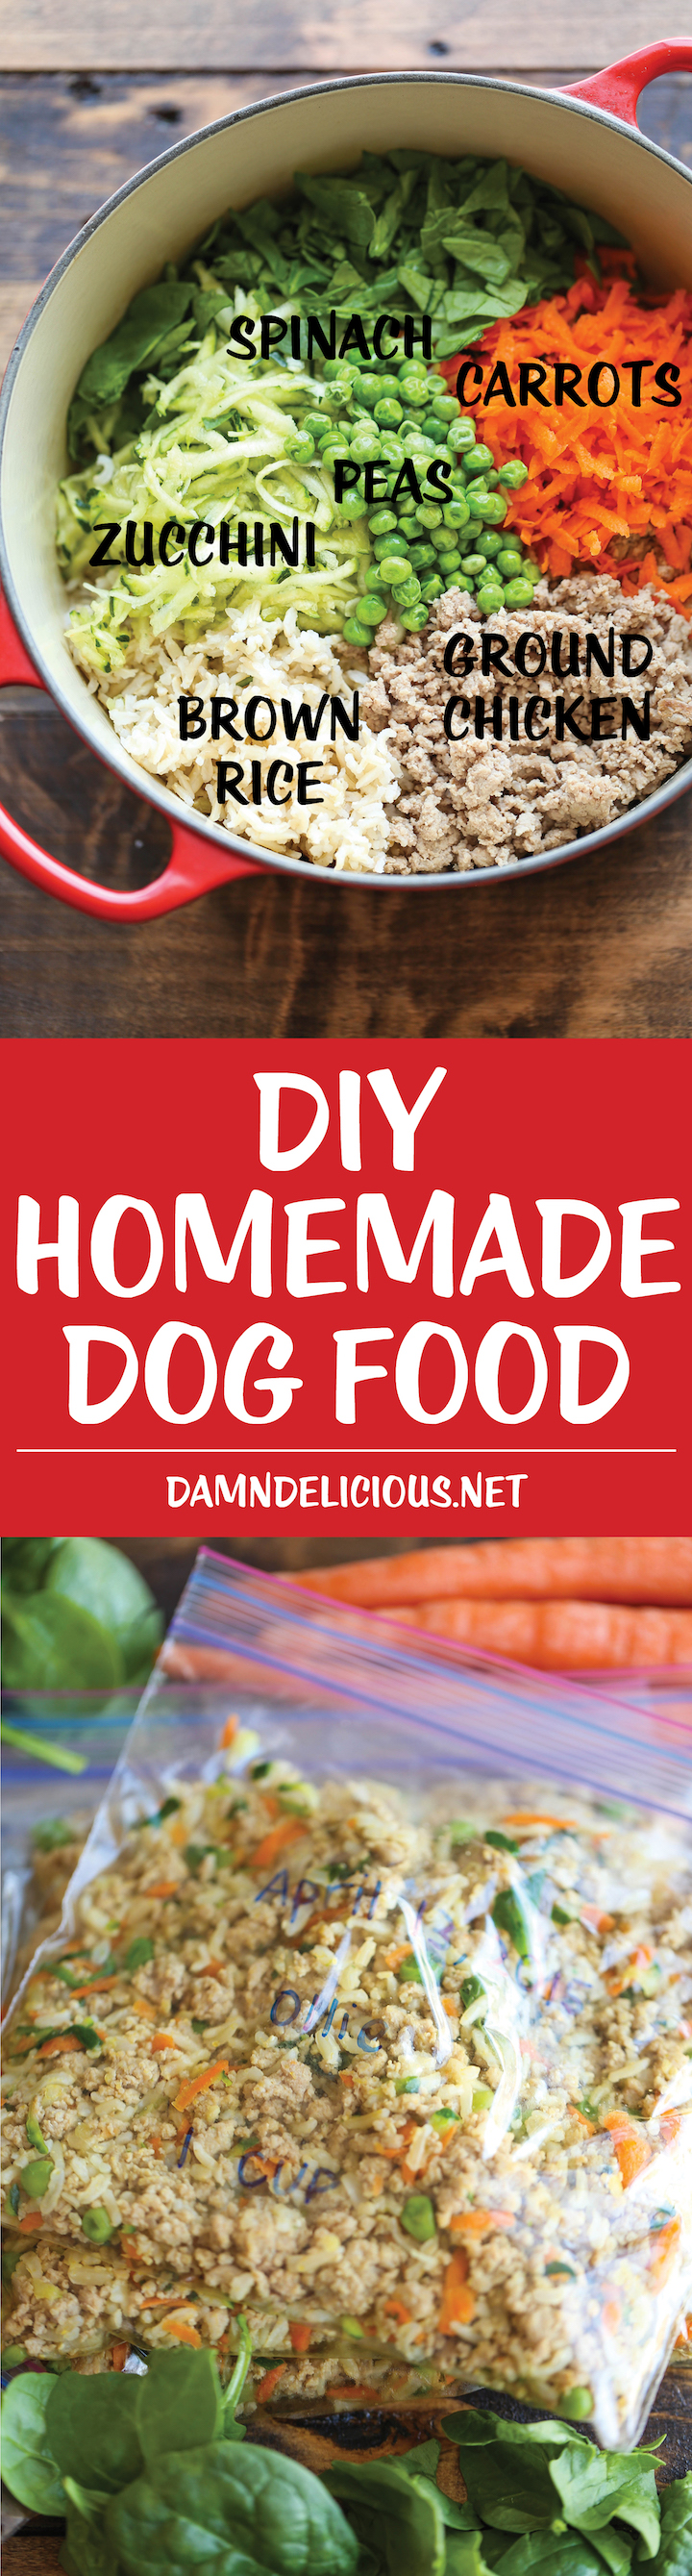 DIY Homemade Dog Food